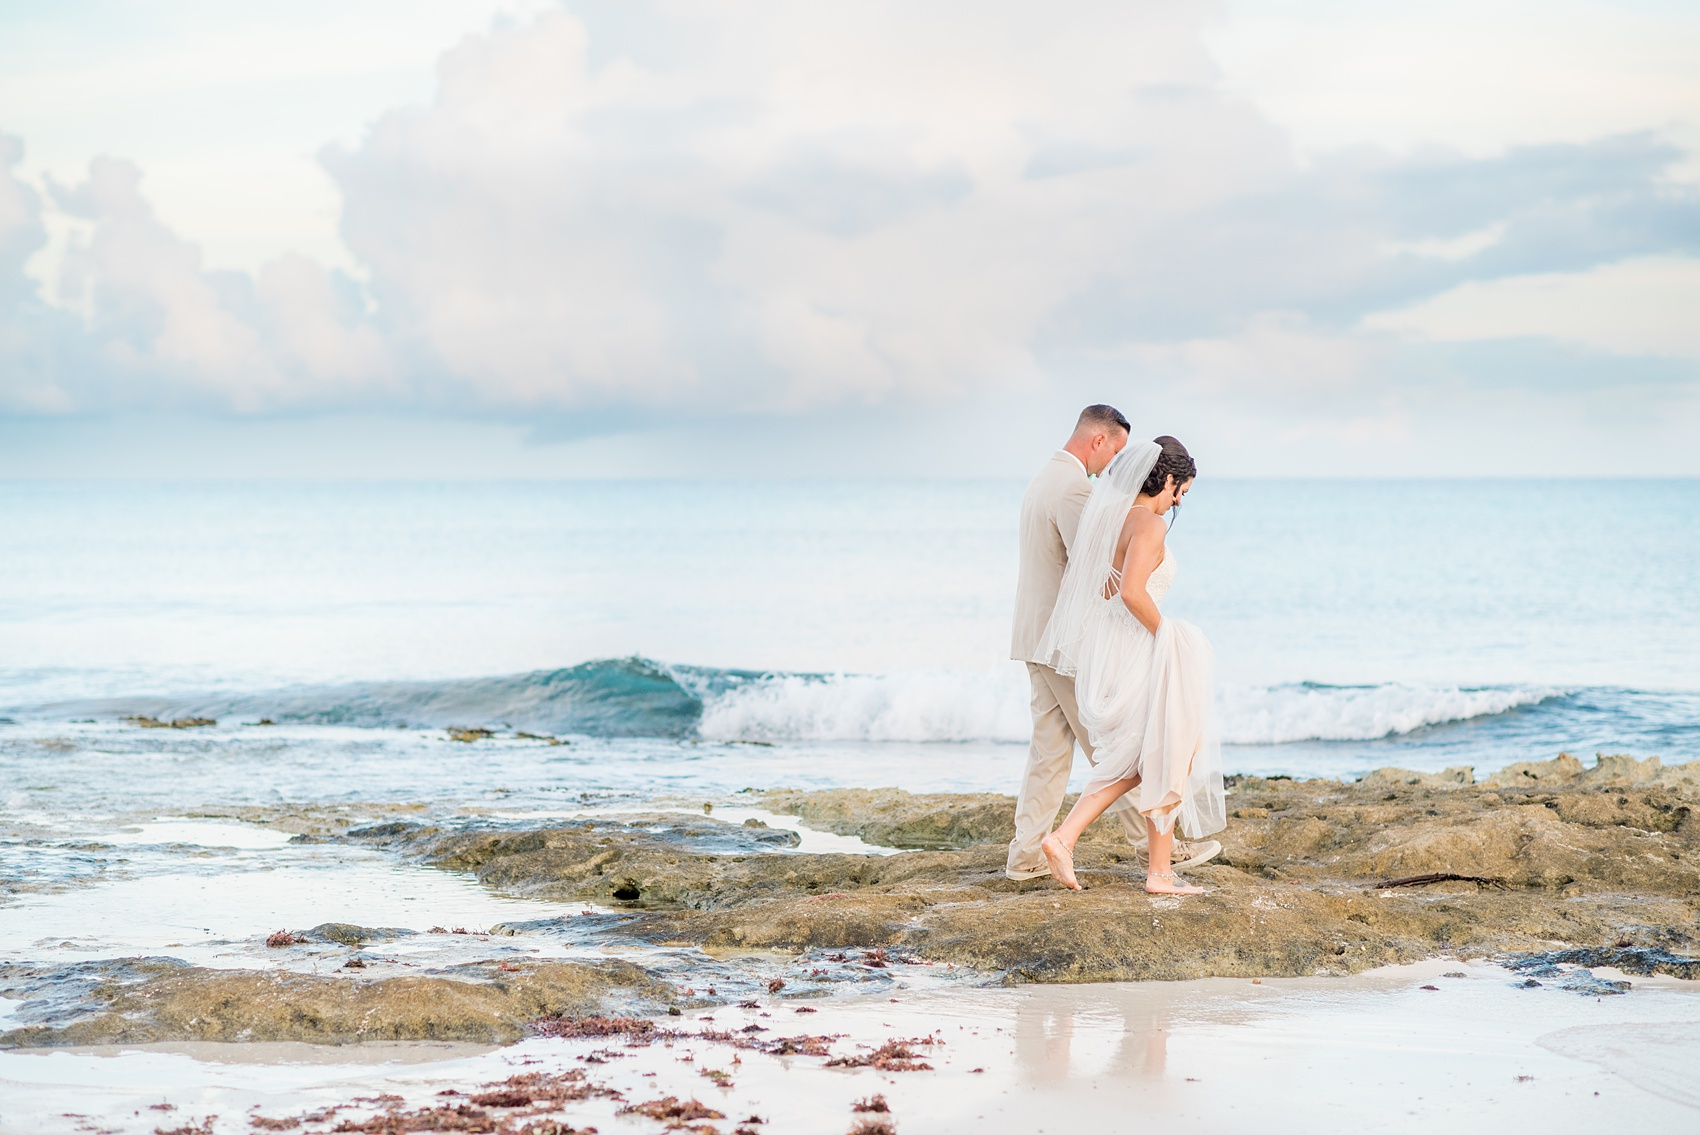 Mikkel Paige Photography photos from a wedding at Grand Paraiso, Mexico, Playa del Carmen Iberostar resort. Picture of the bride and groom walking on the beach.